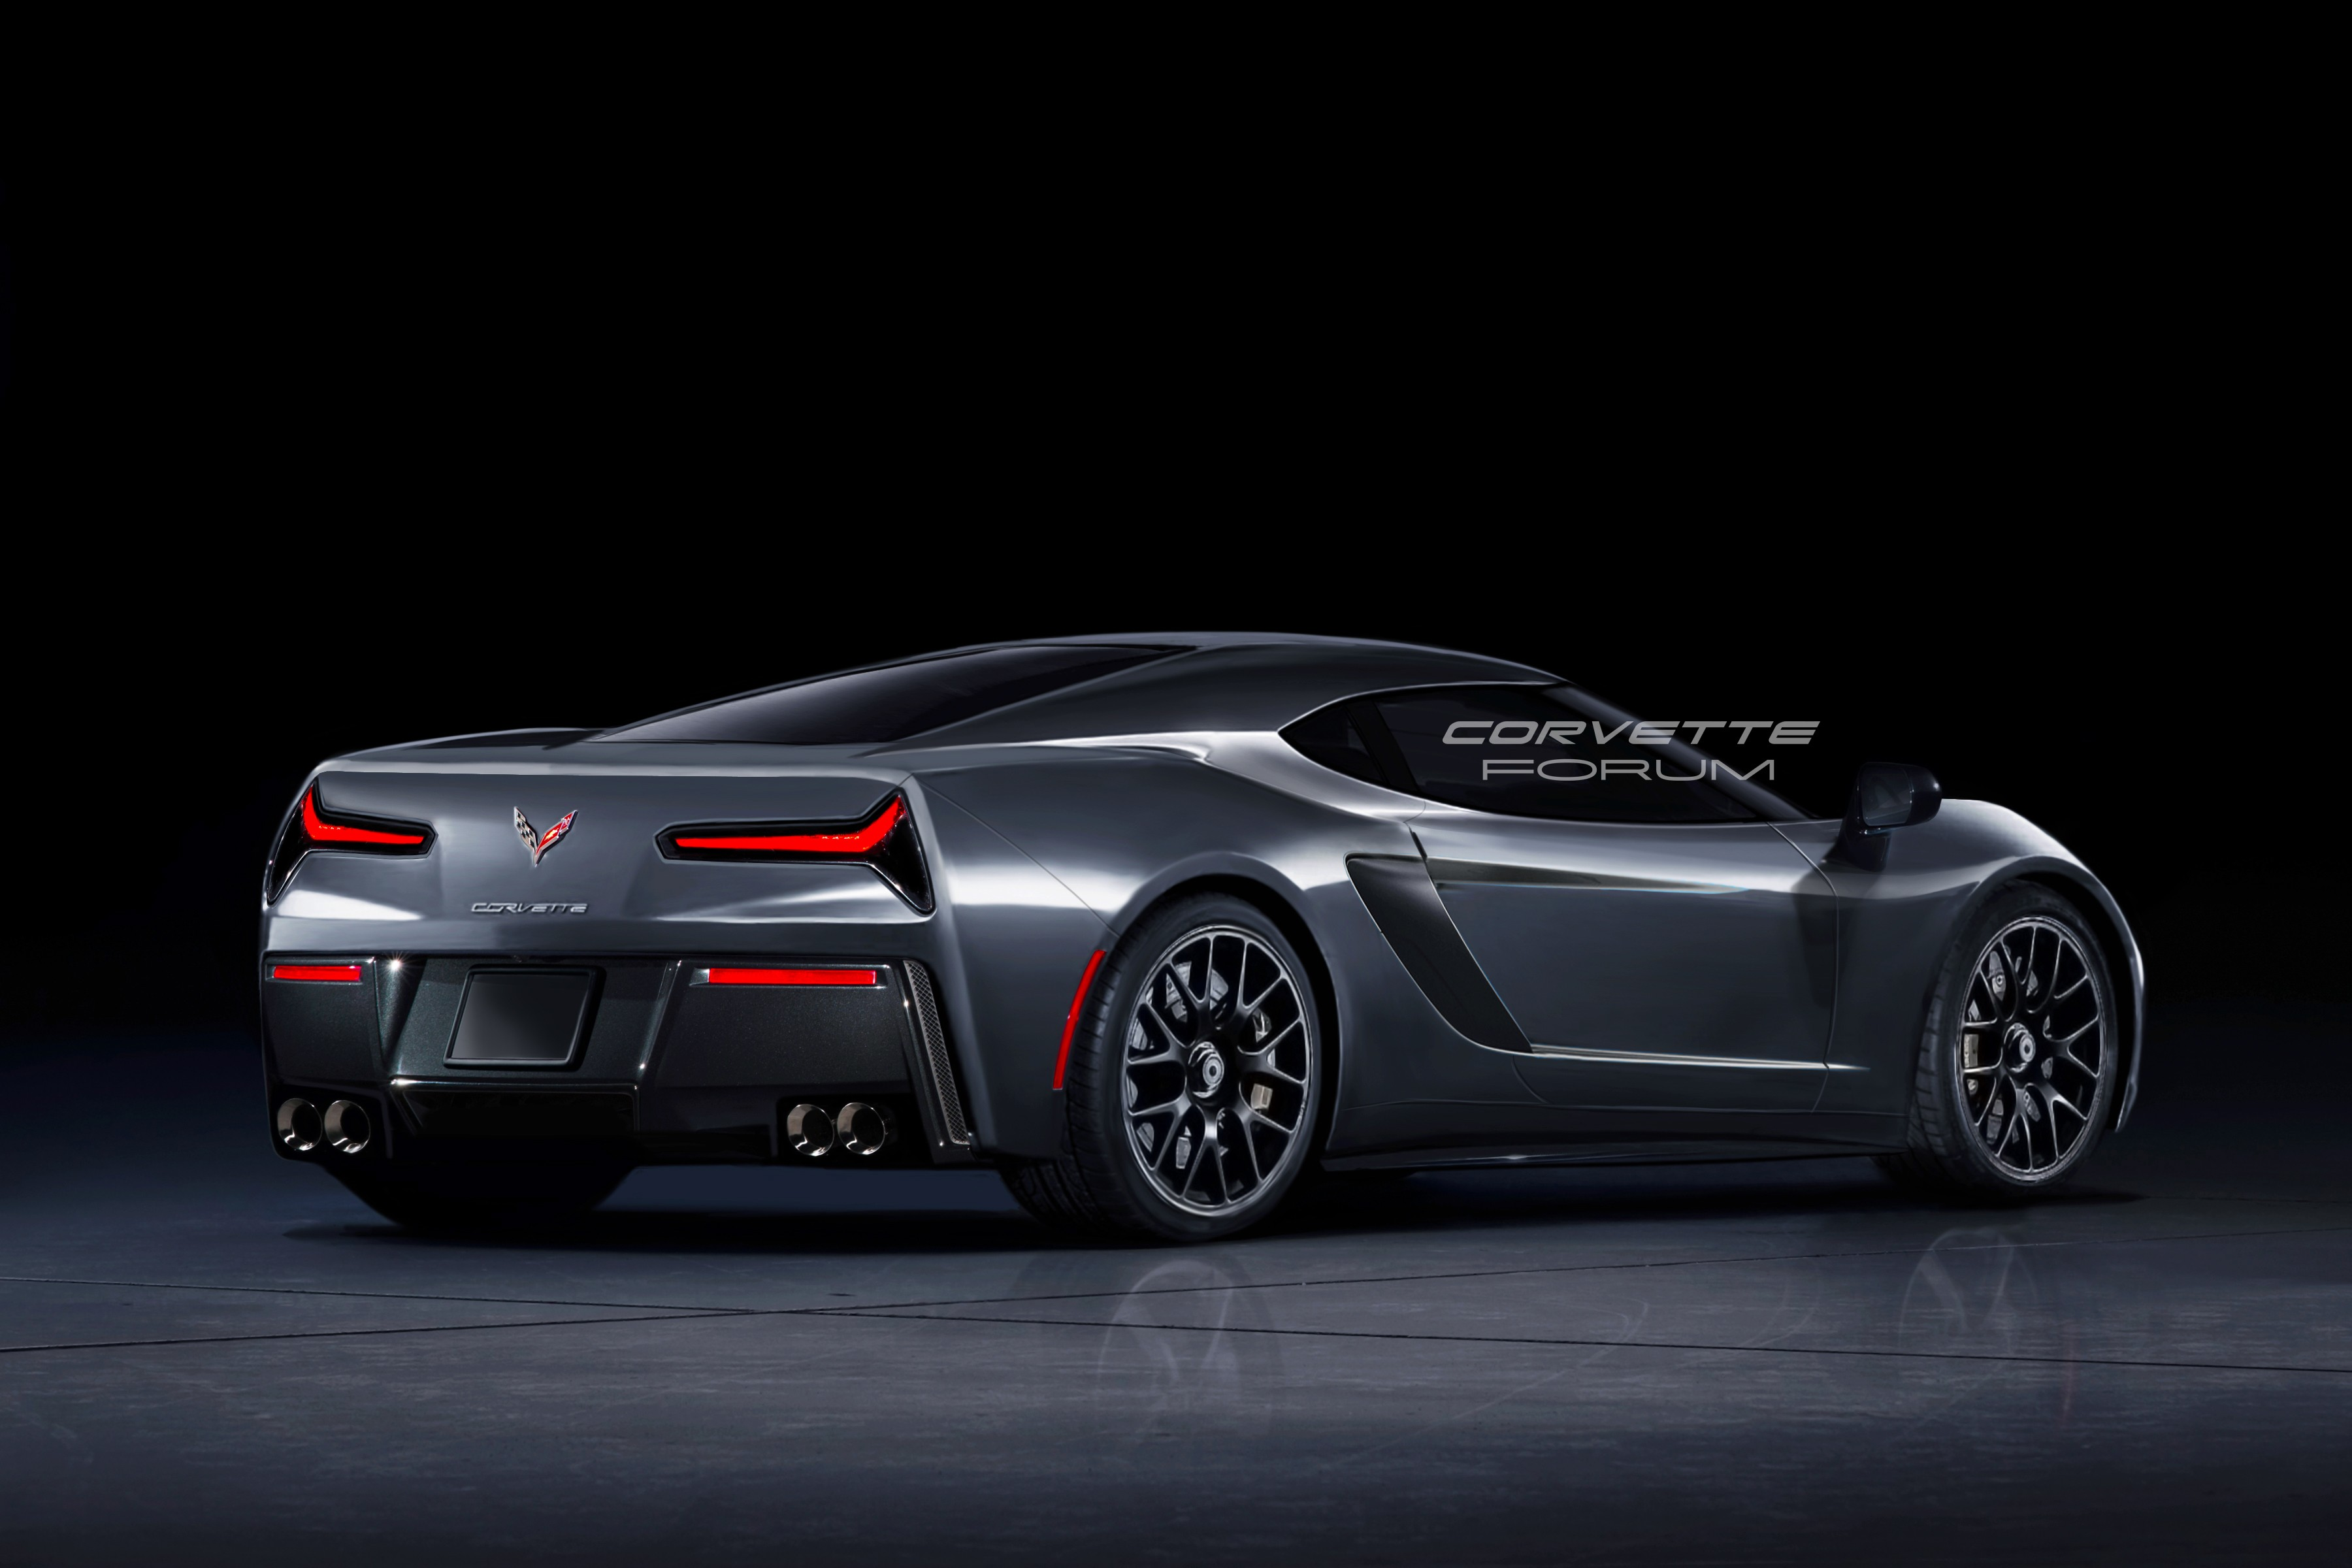 Mid-Engine Corvette (C8) Front And Rear Bumpers Photographed In The